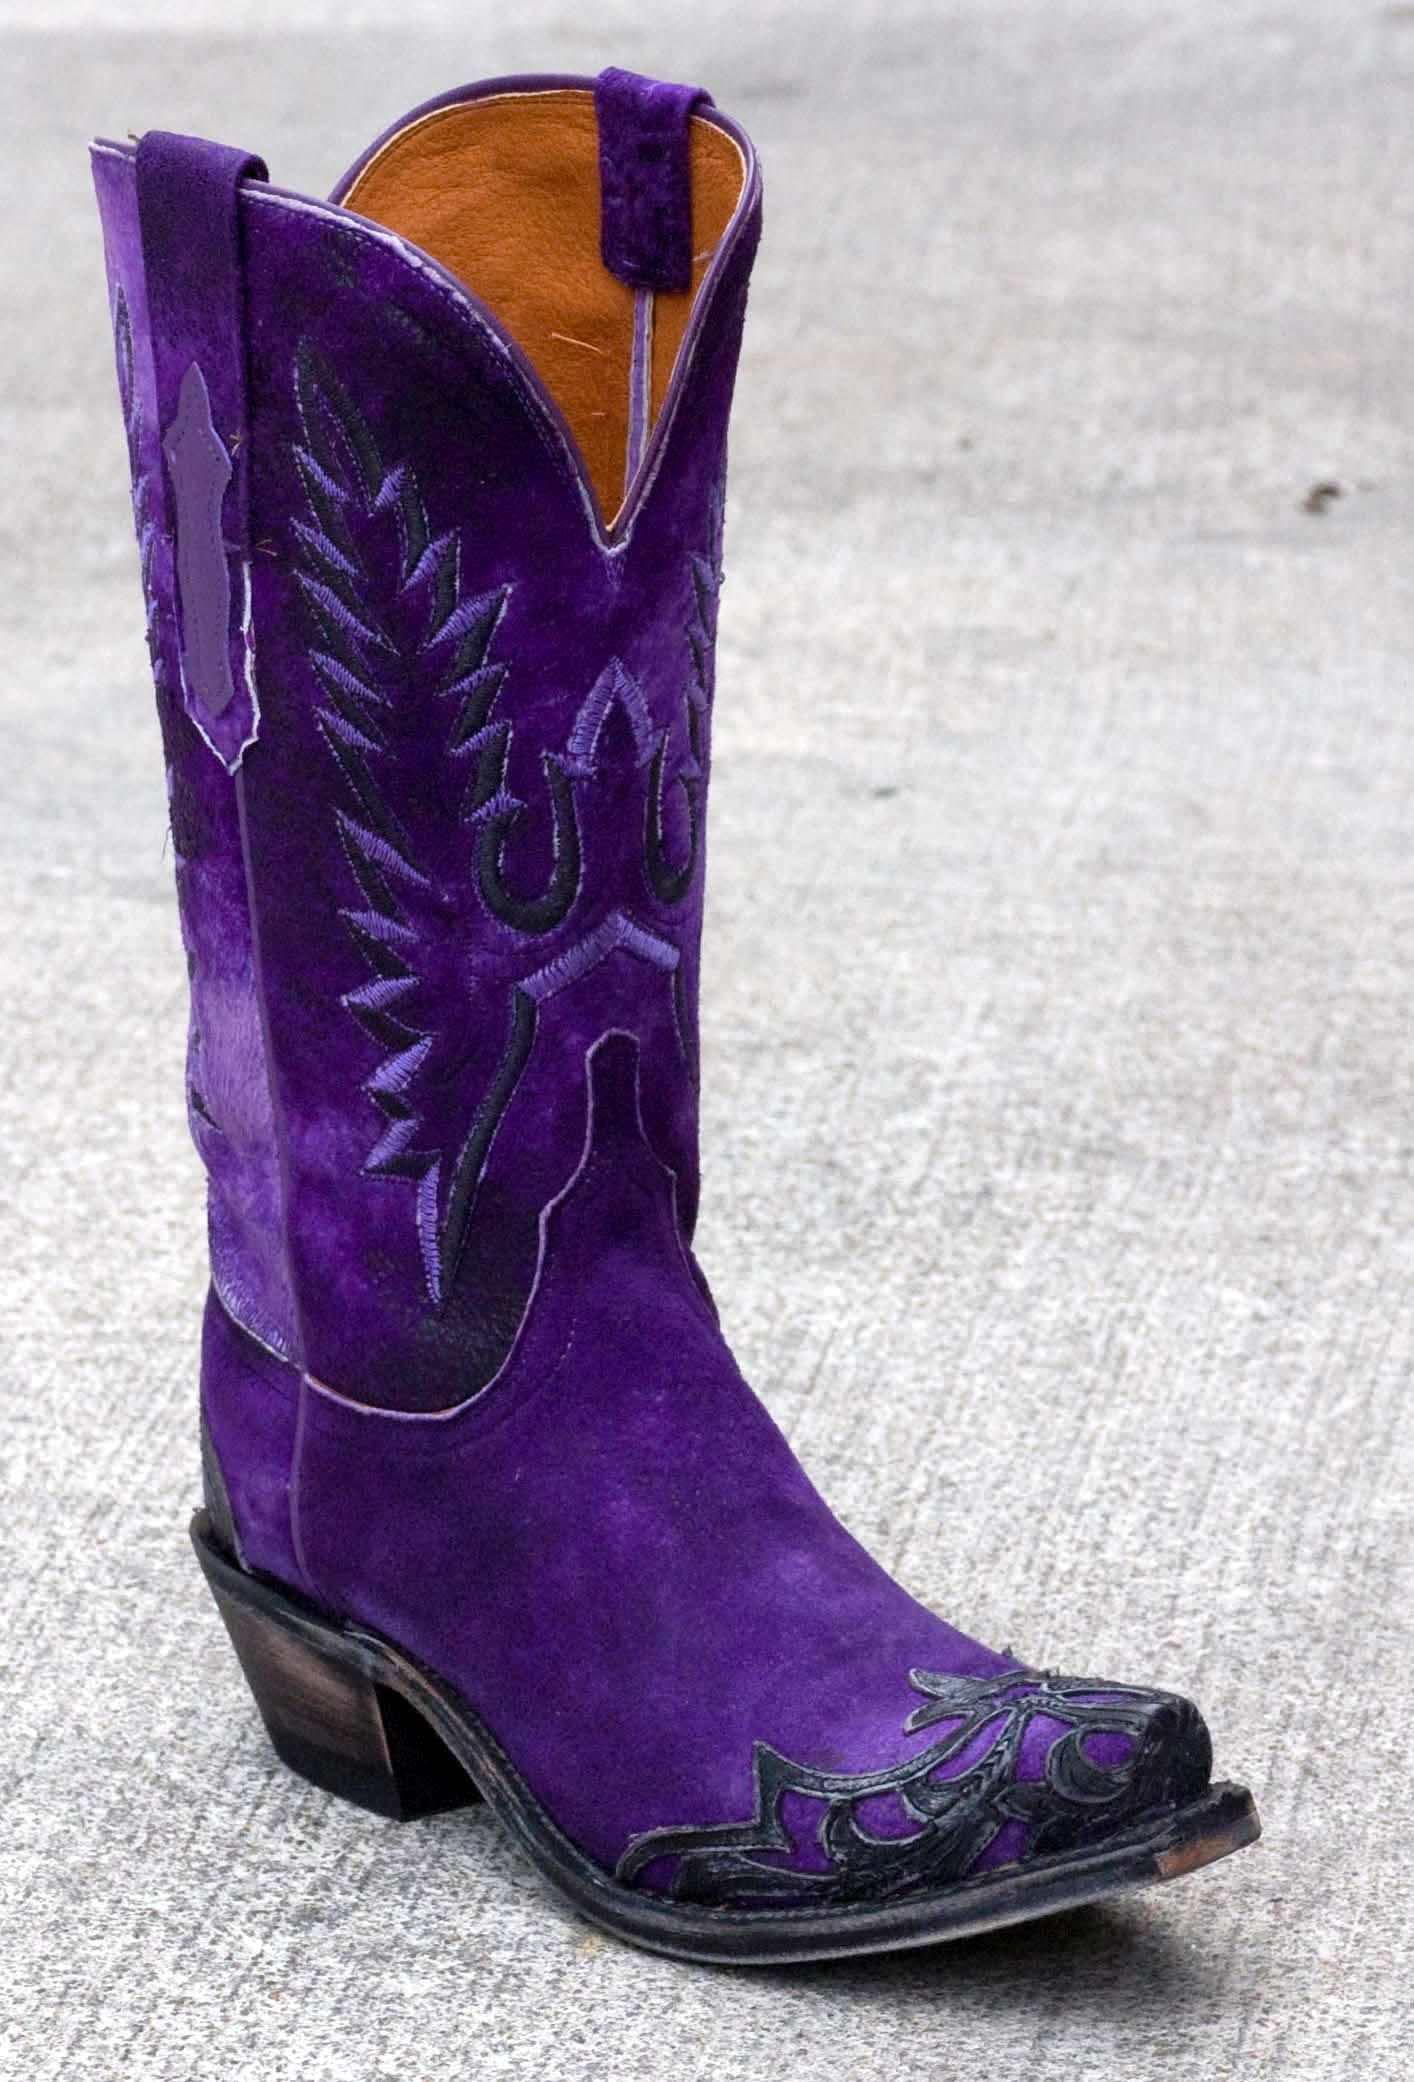 Womens Lucchese Goat Boots Purple #N4736 -- #LSU ladies need these ...